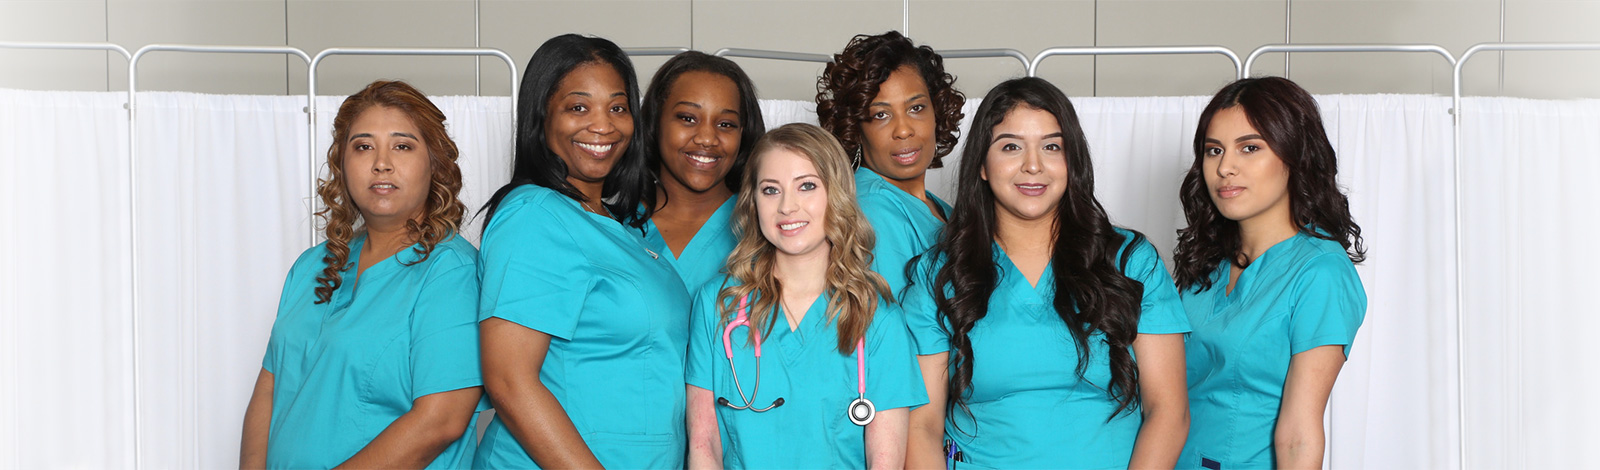 A group of nurses standing together smiling.